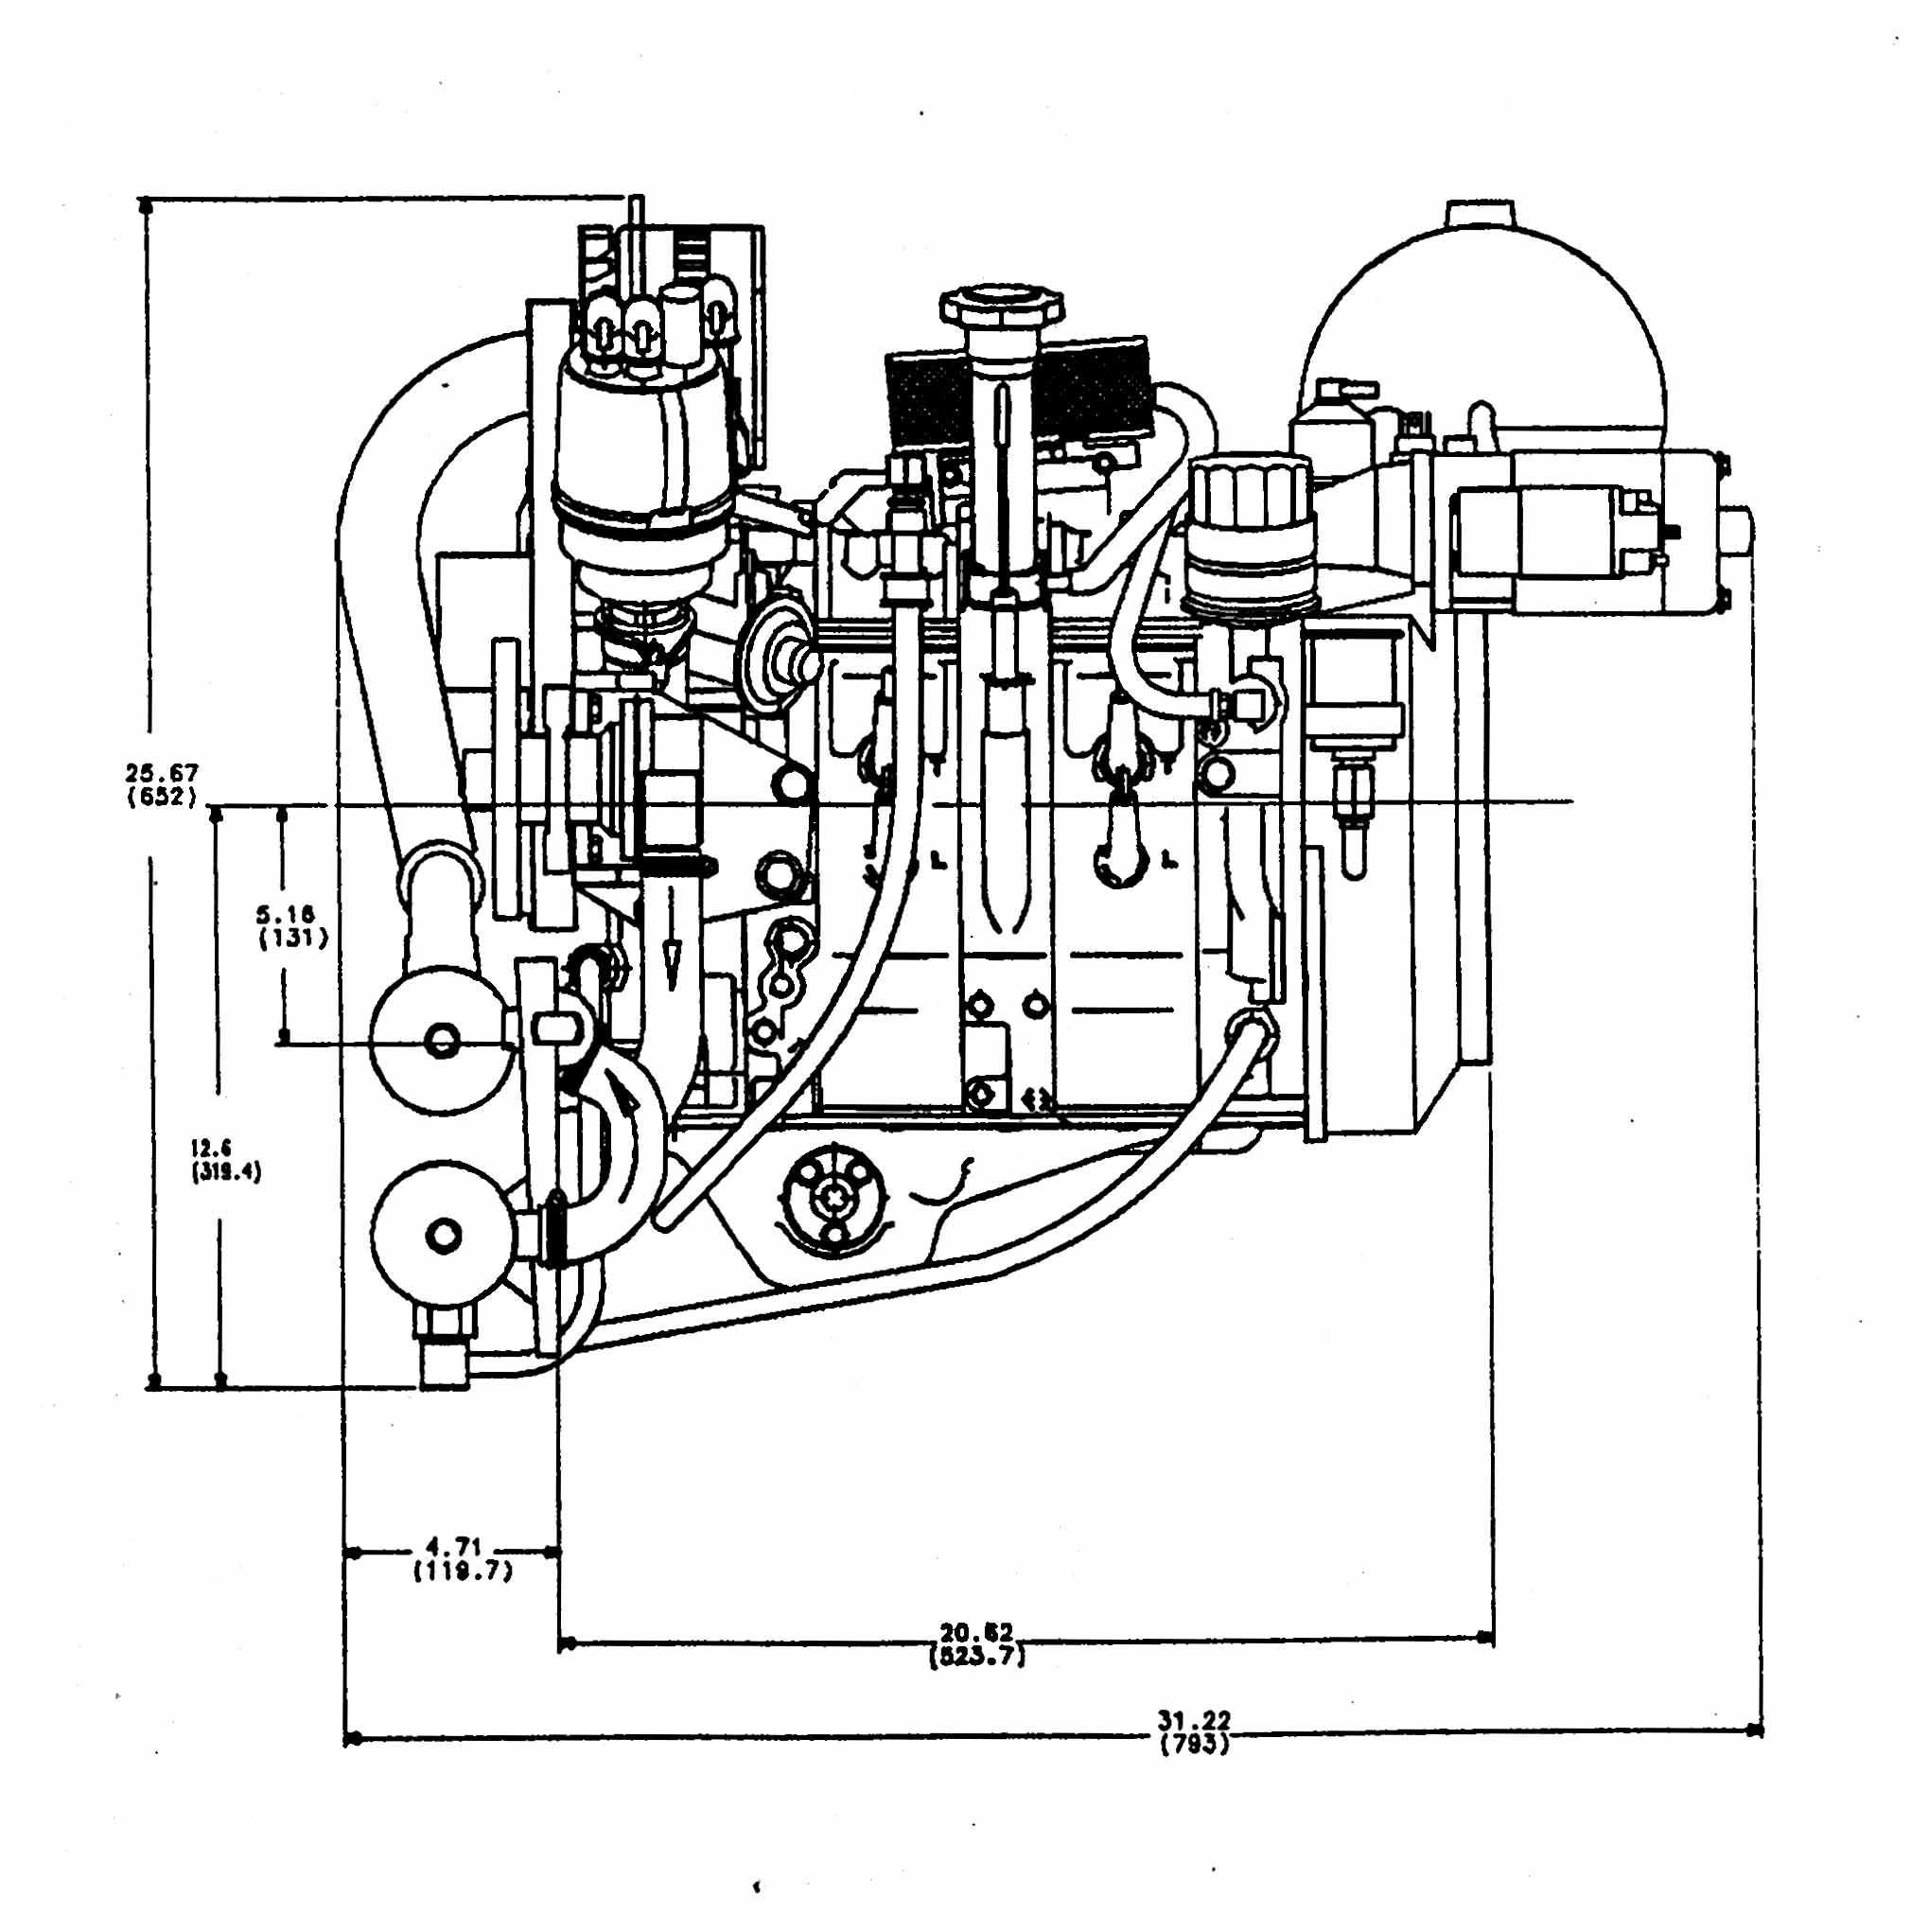 A Diagram For 2005 Mazda Rx 8 Engine